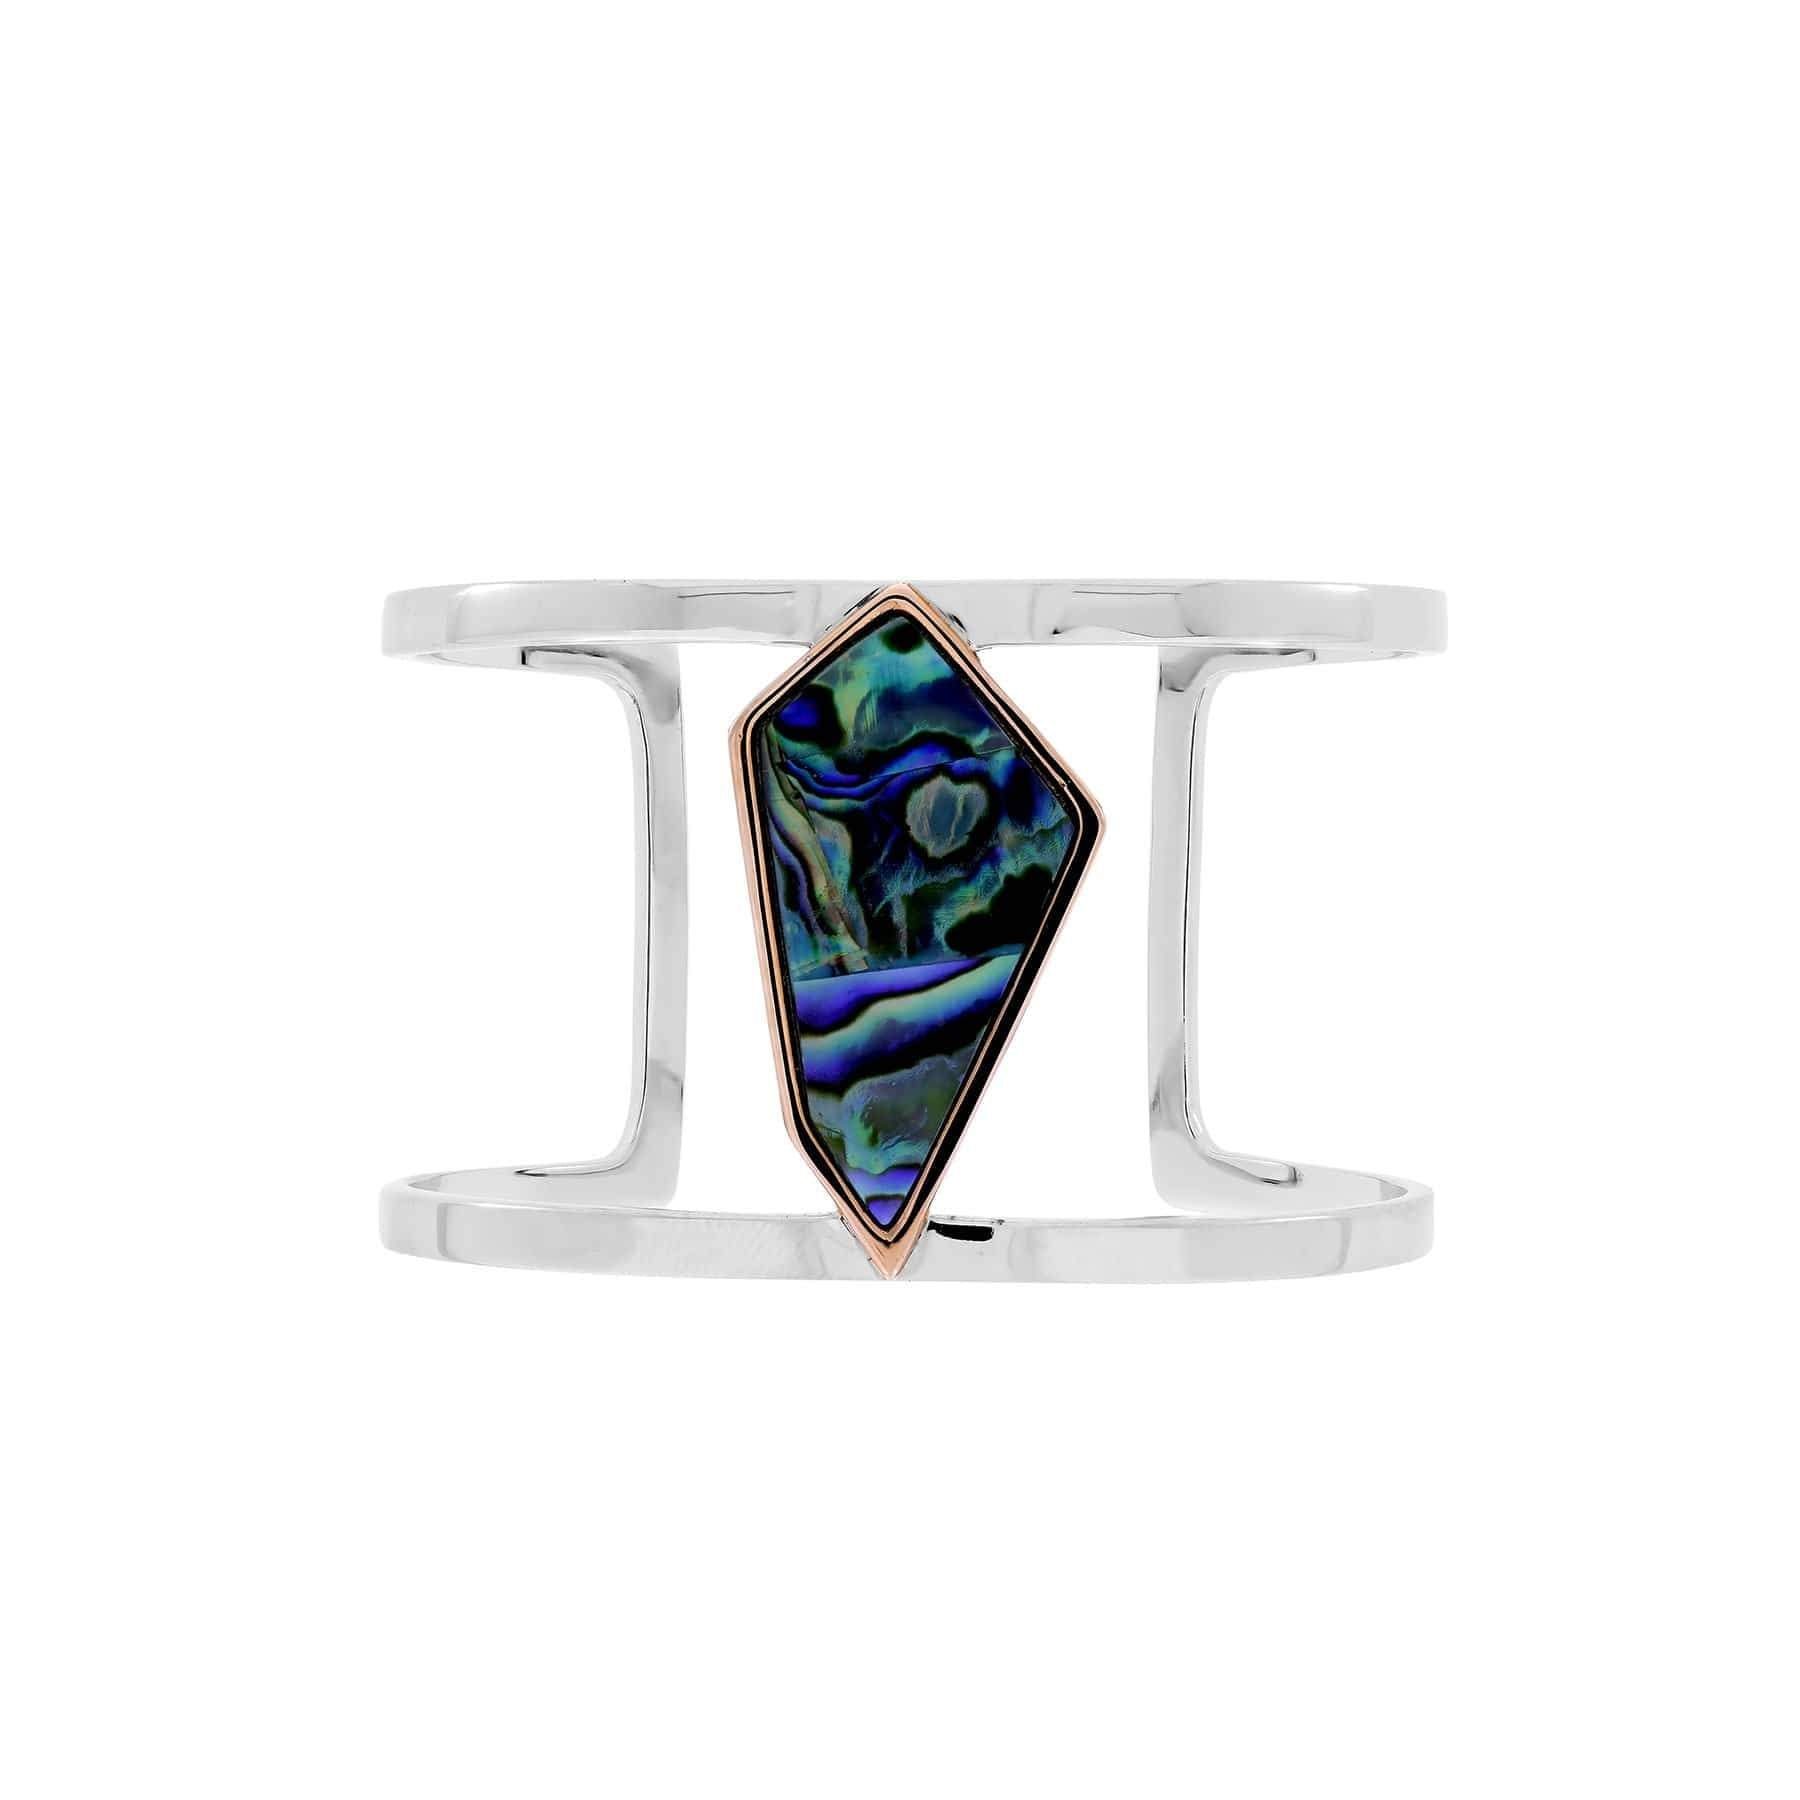 Abalone Pinnacle Statement Cuff